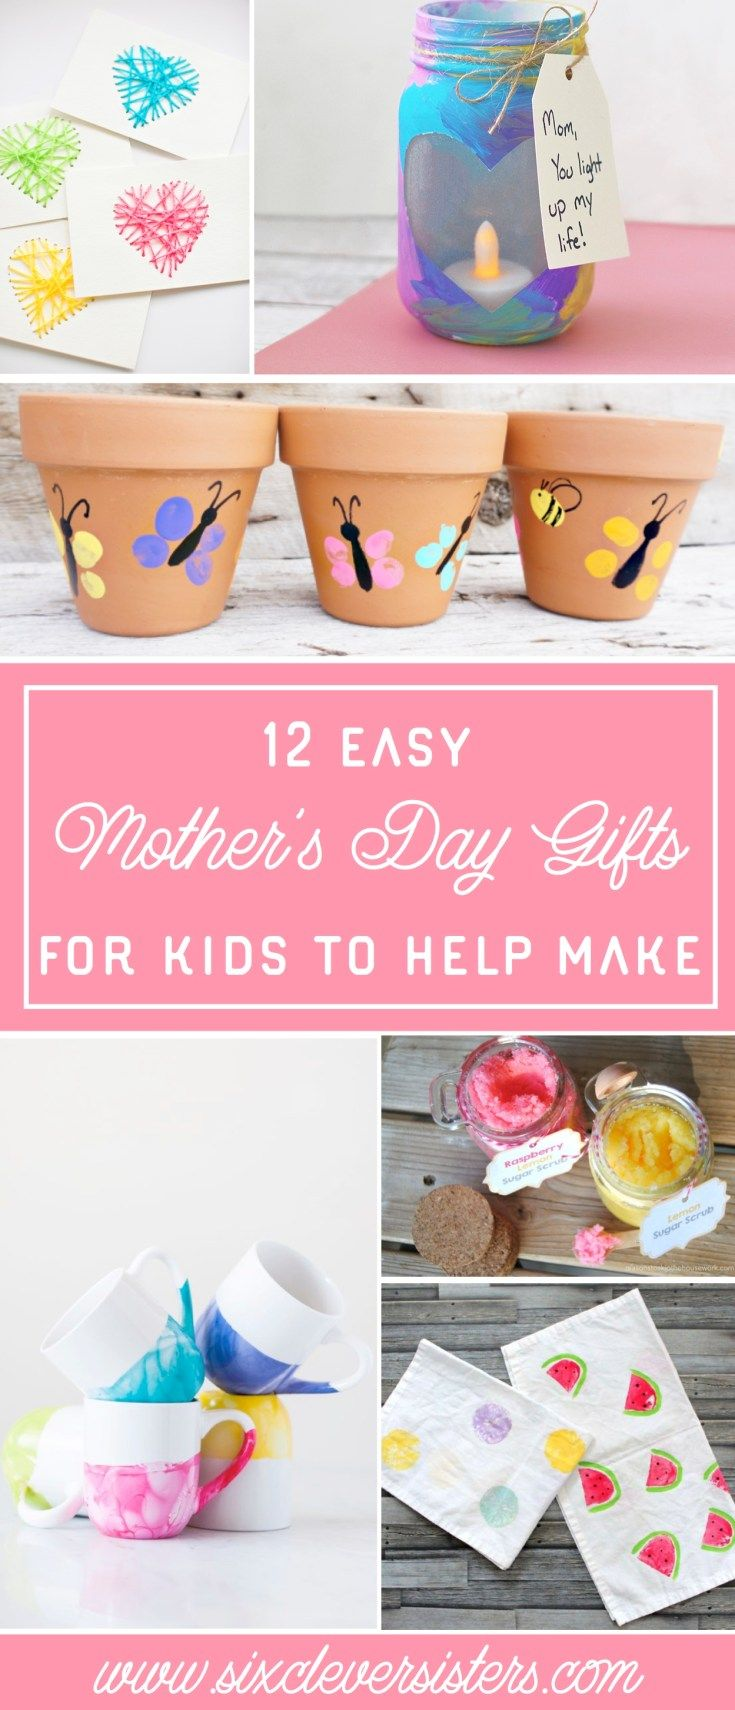 12 mothers day gifts for kids to help make six clever